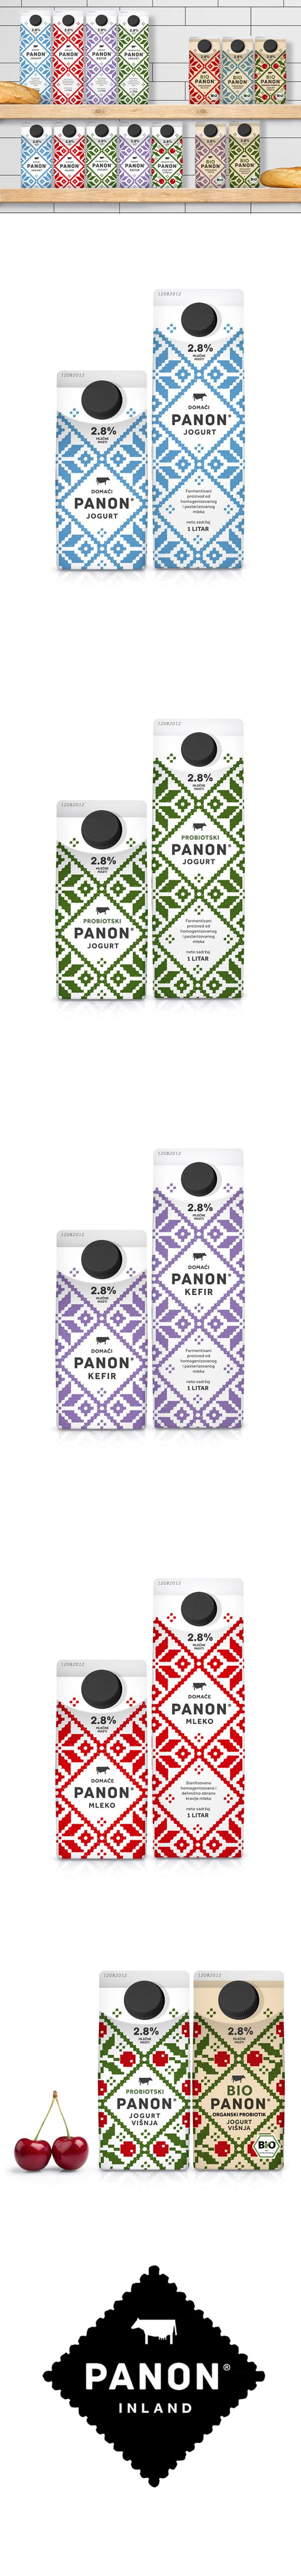 PANON Dairy *** Stunning new packaging from Peter Gregson Studio for PANON and BIOPANON yogurt and kefir brands #packaging #branding #marketing PD